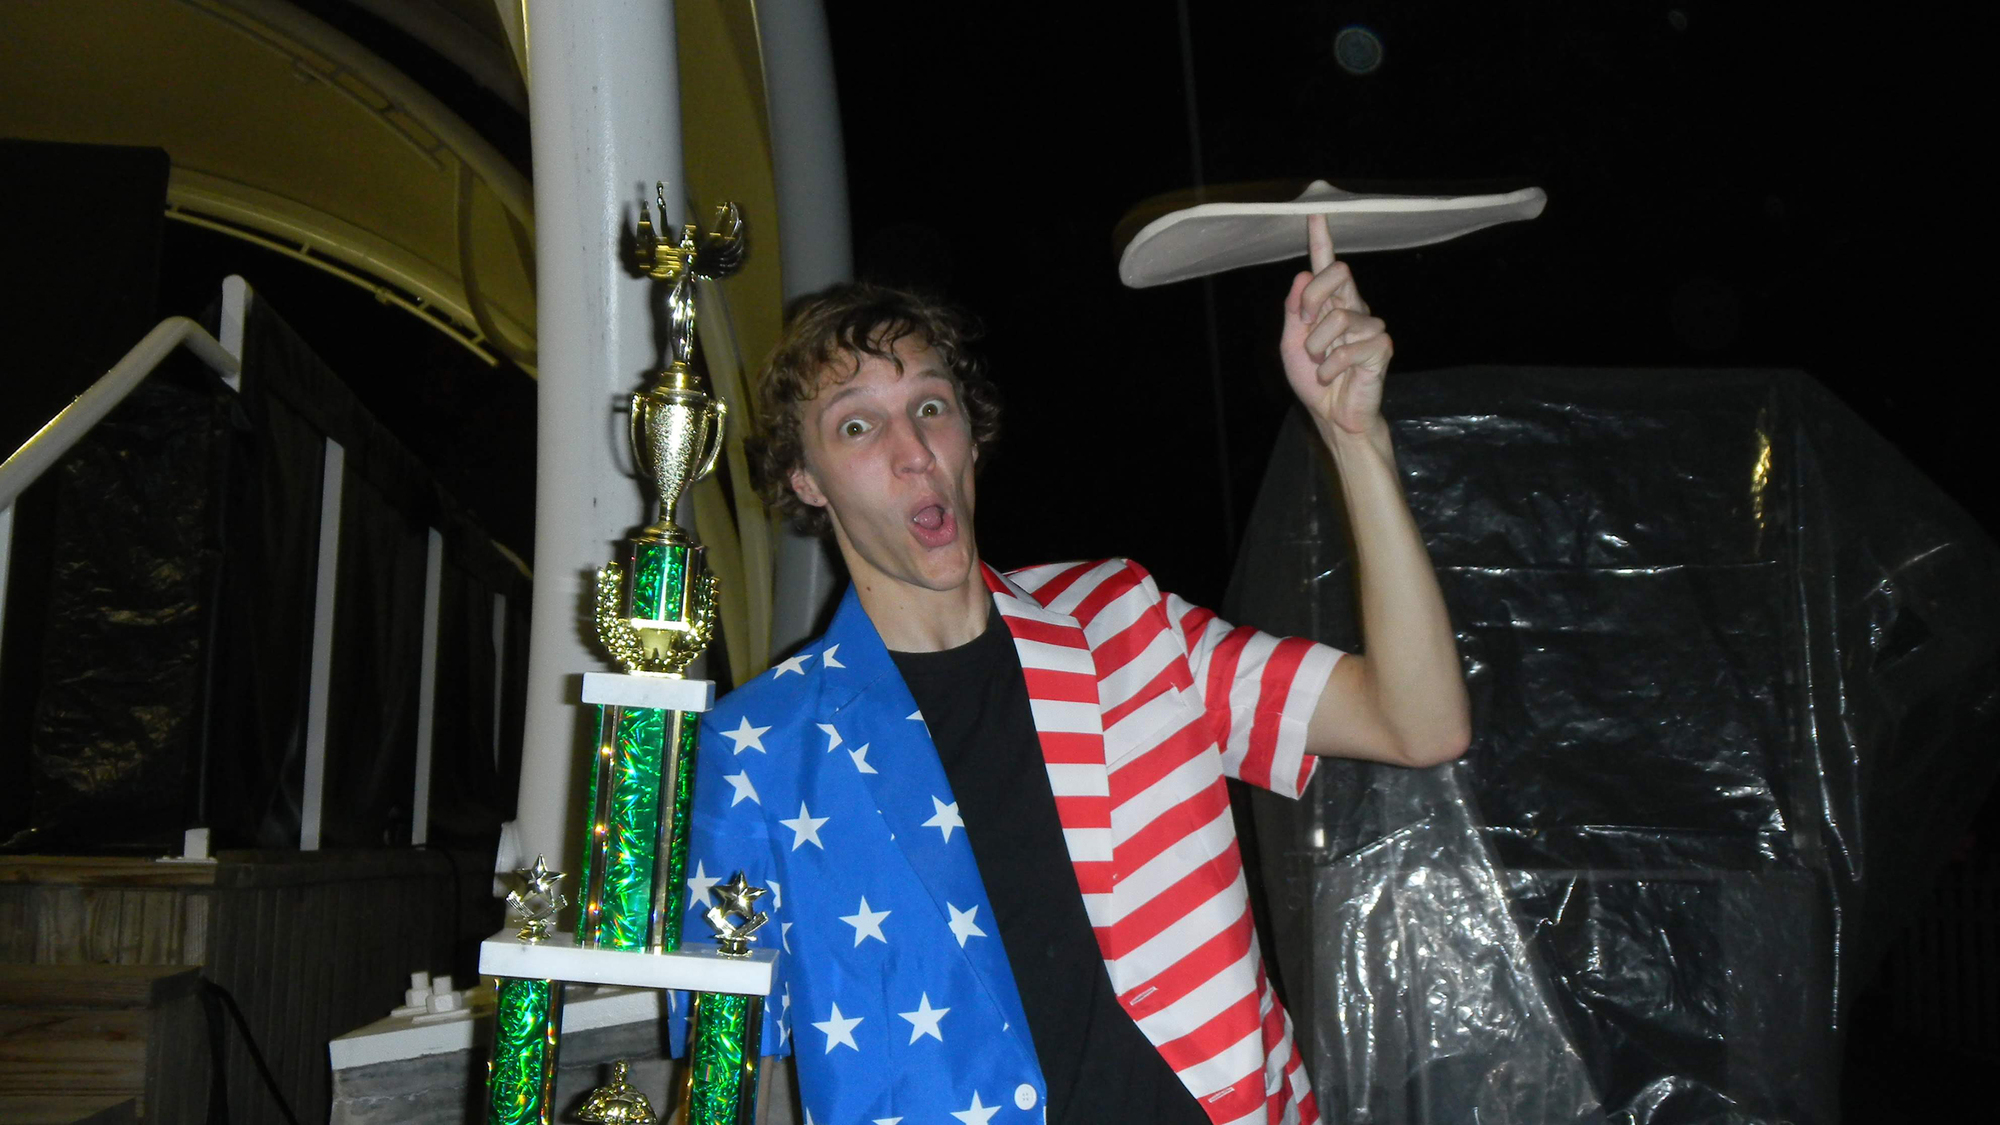 Diesslin has shown off his talents at the Minnesota State Fair.